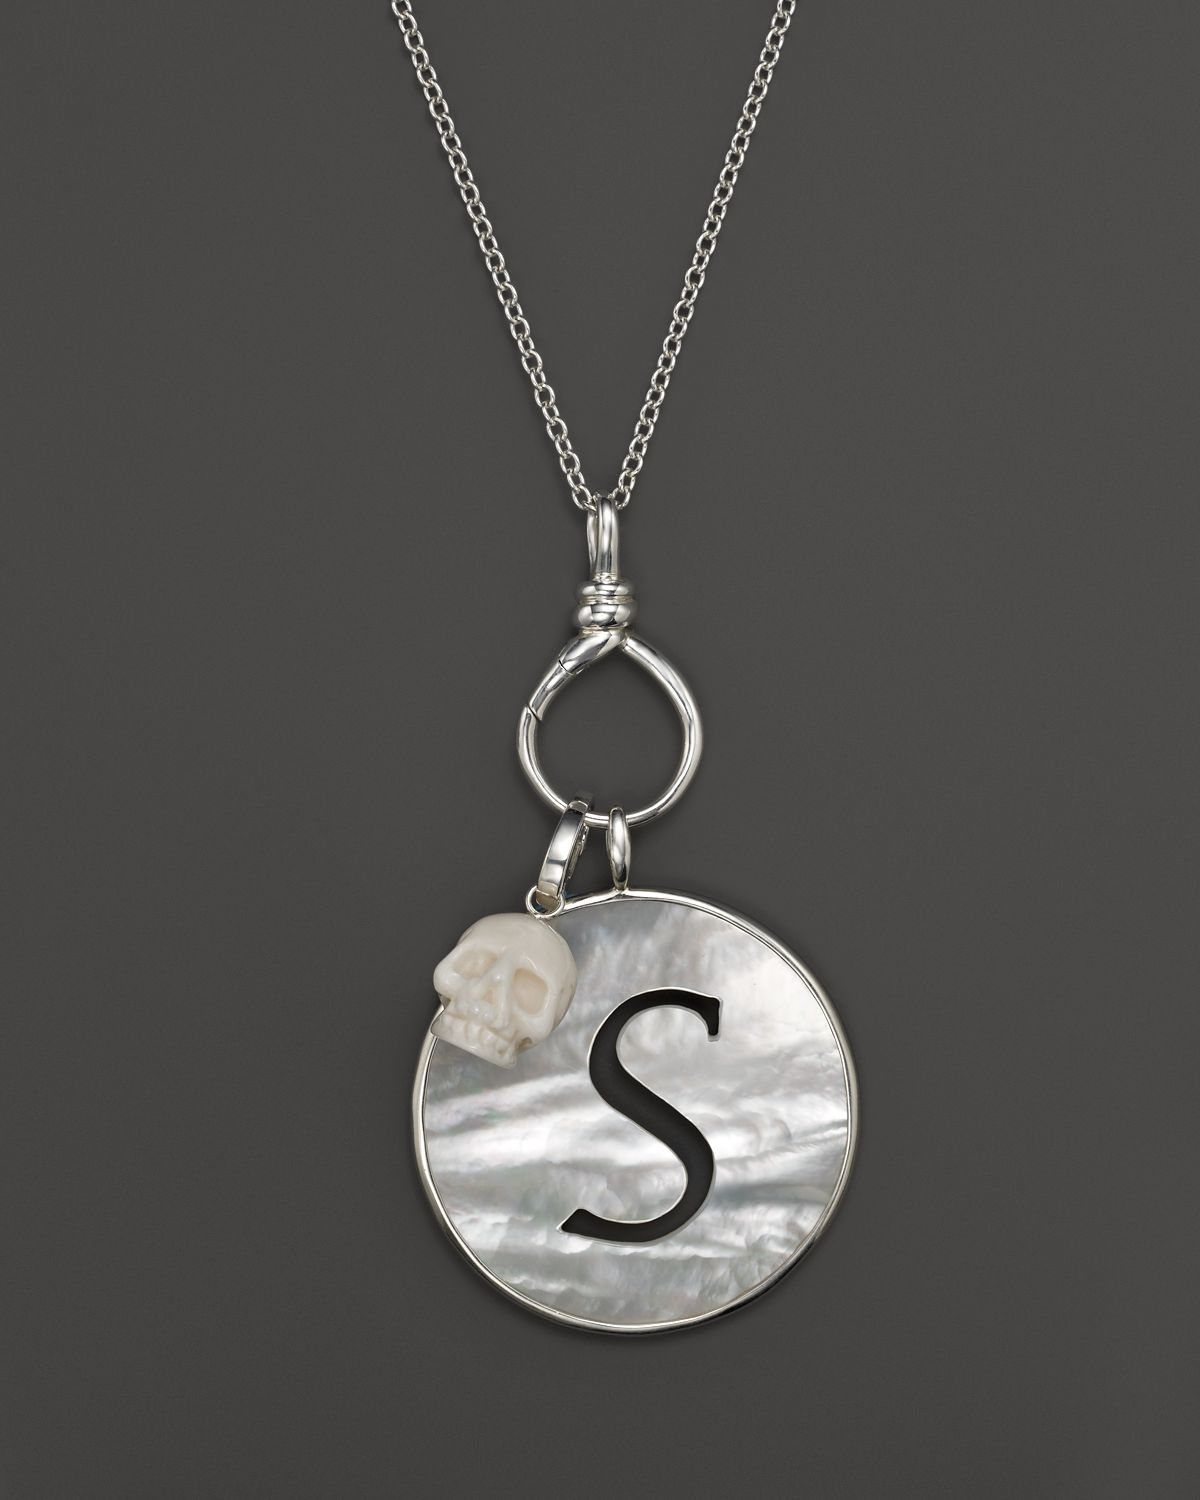 Lyst - Ippolita Sterling Silver Twisted Wire Charm Holder Necklace ...